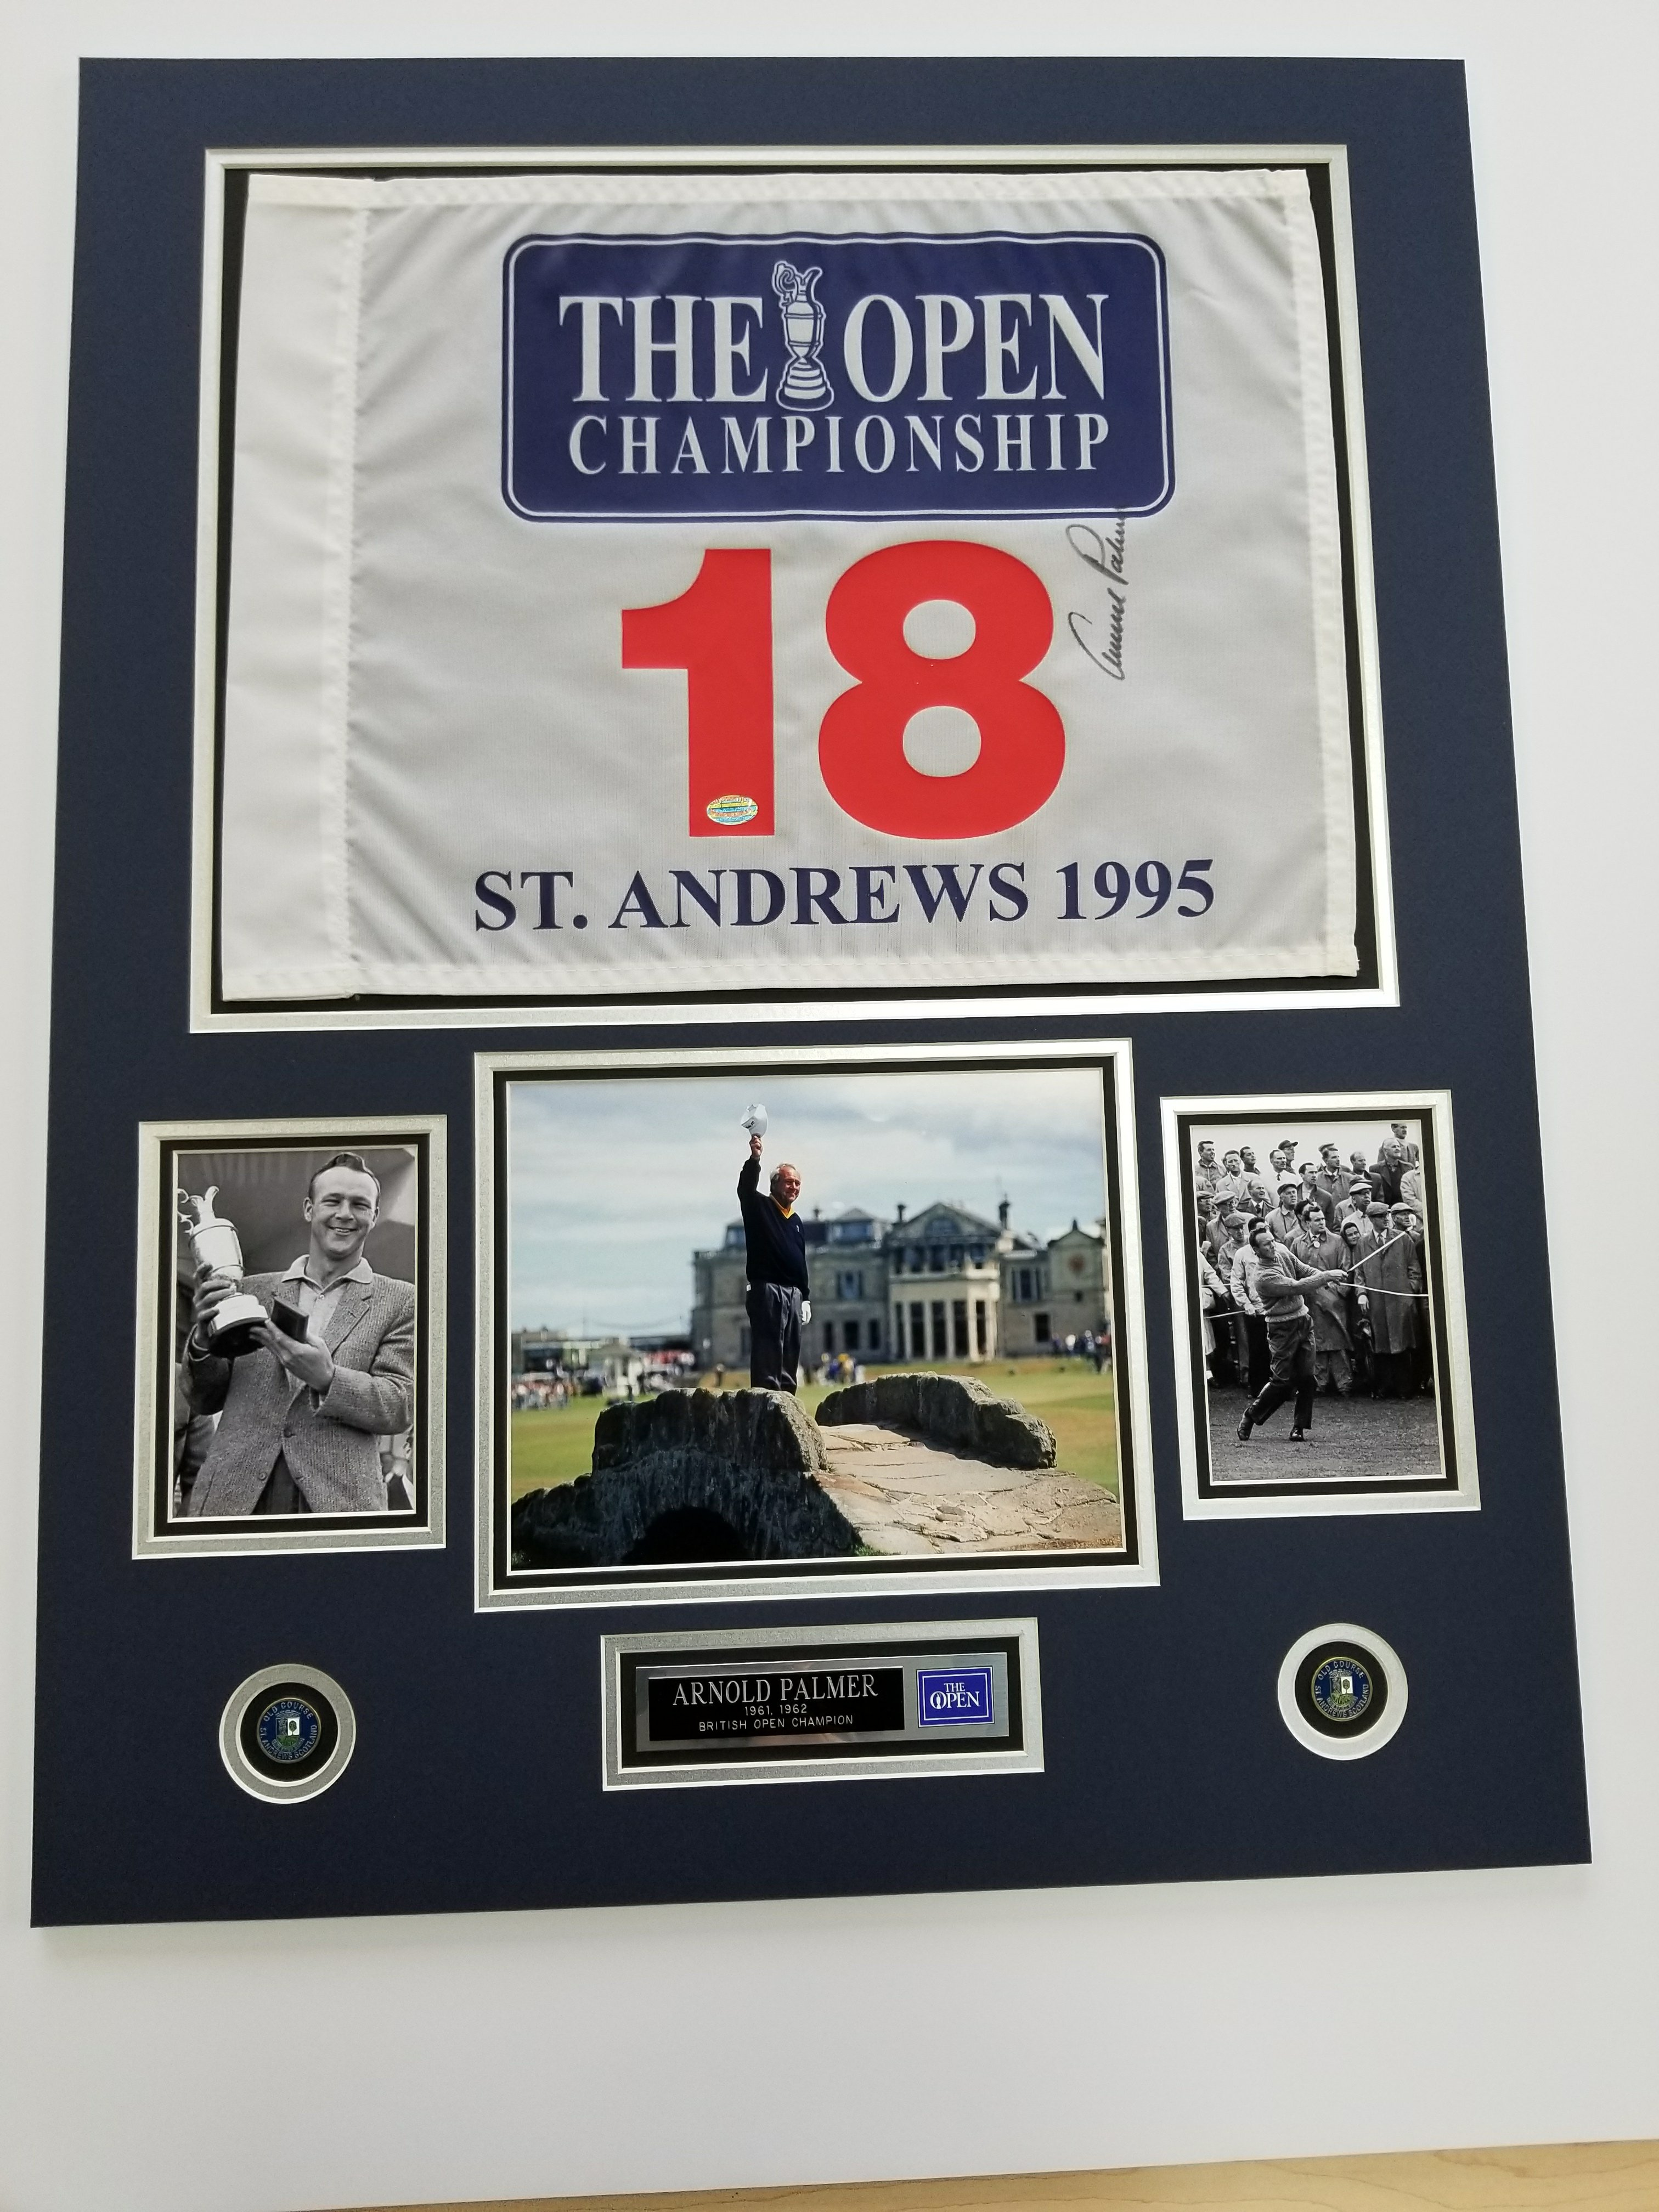 Custom golf flags frame time inc working with a client on a series of custom autographed golf flags with photos medallions plates and various components jeuxipadfo Gallery